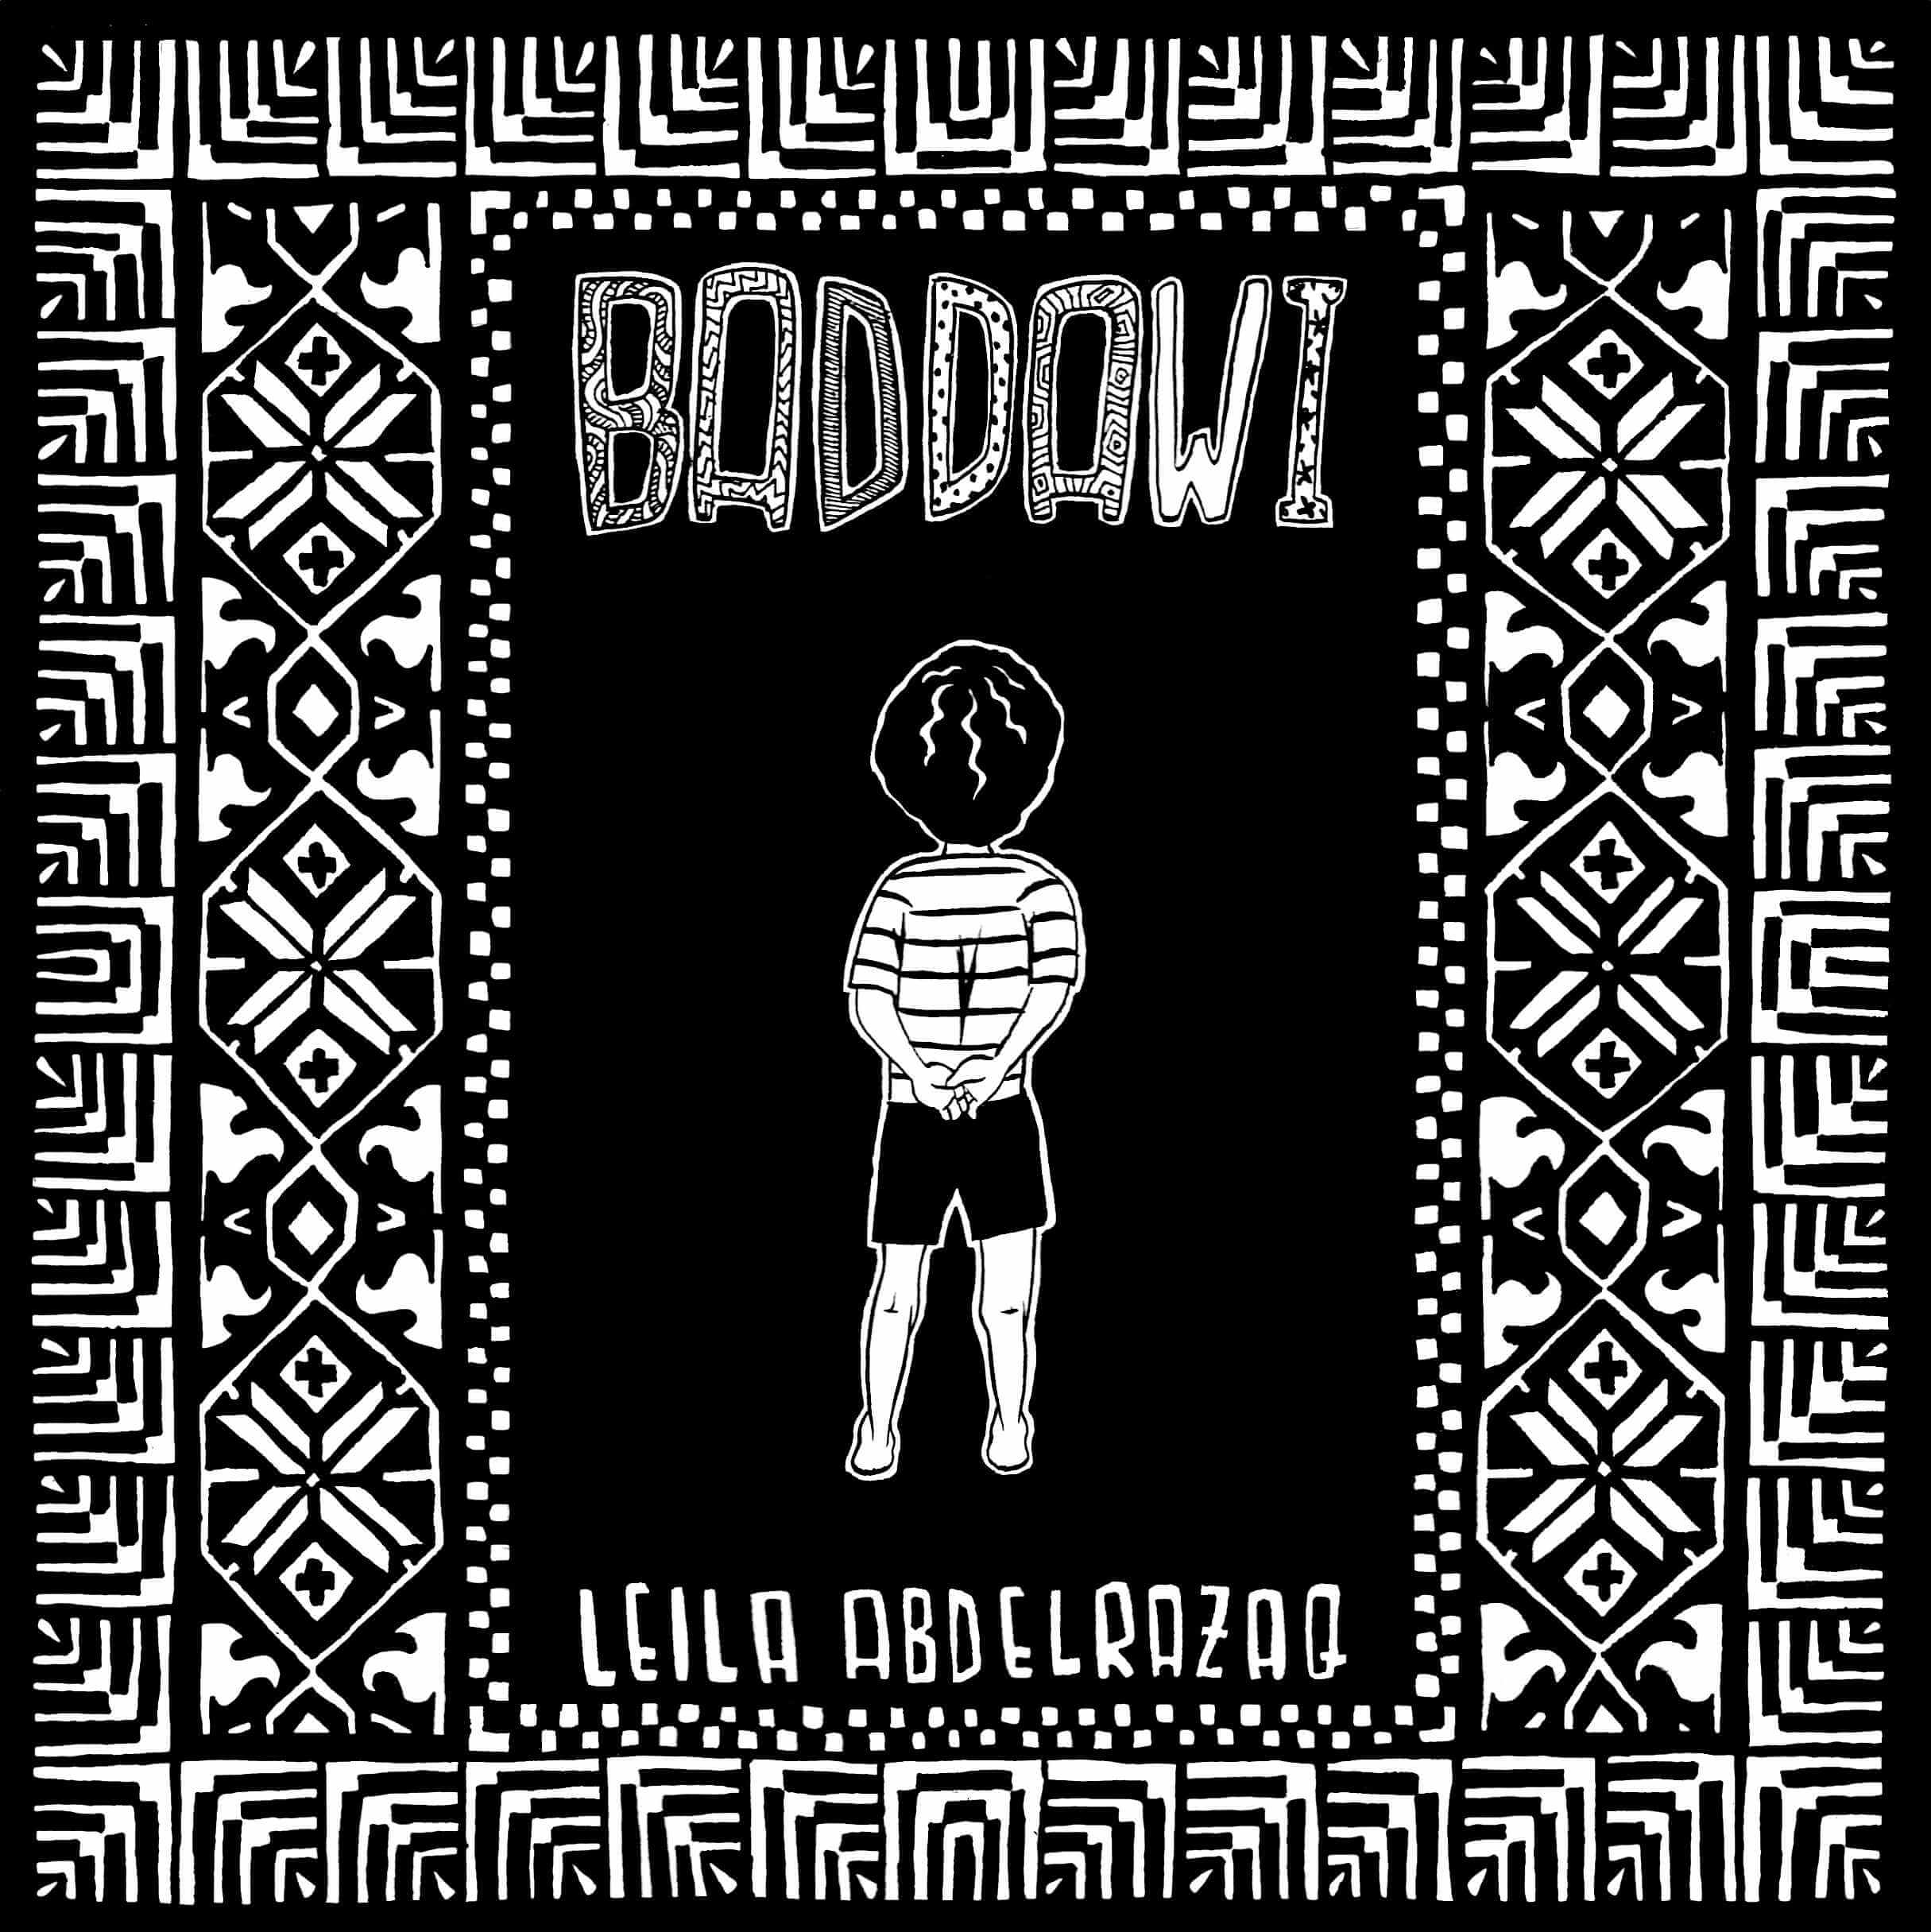 The cover of Baddawi